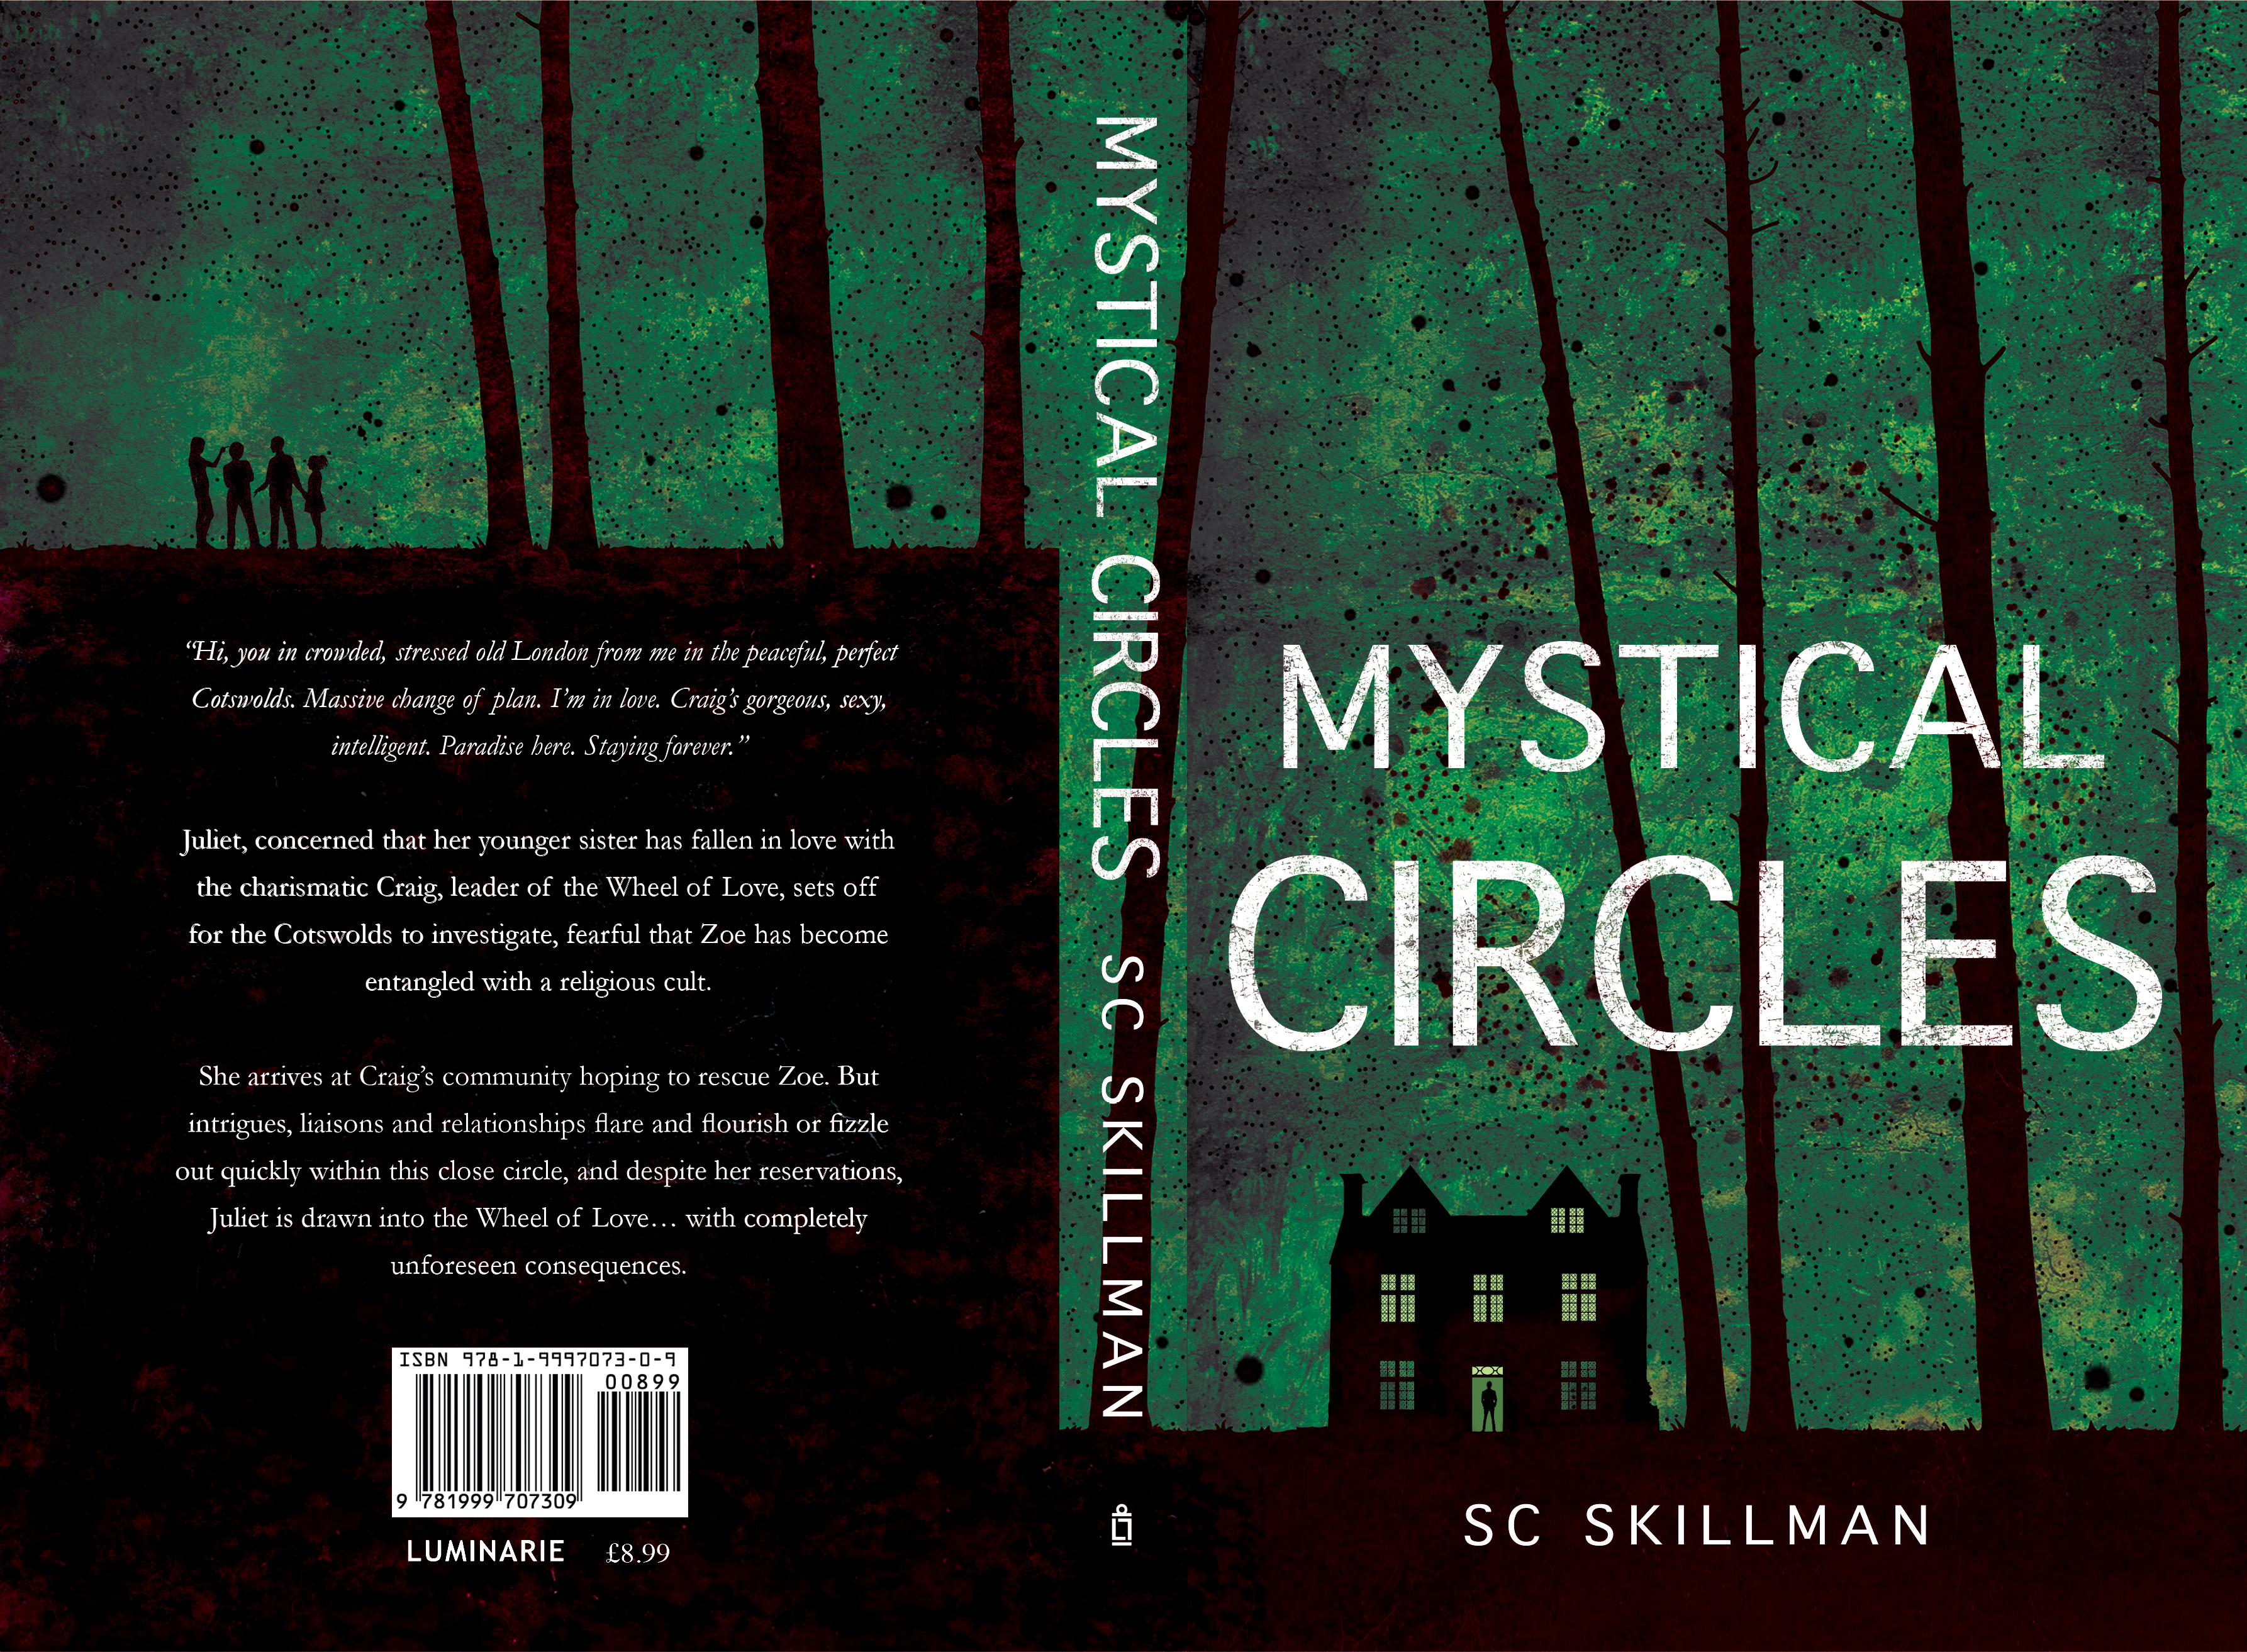 Mystical Circles 9781999707309 Full Cover Final Version4